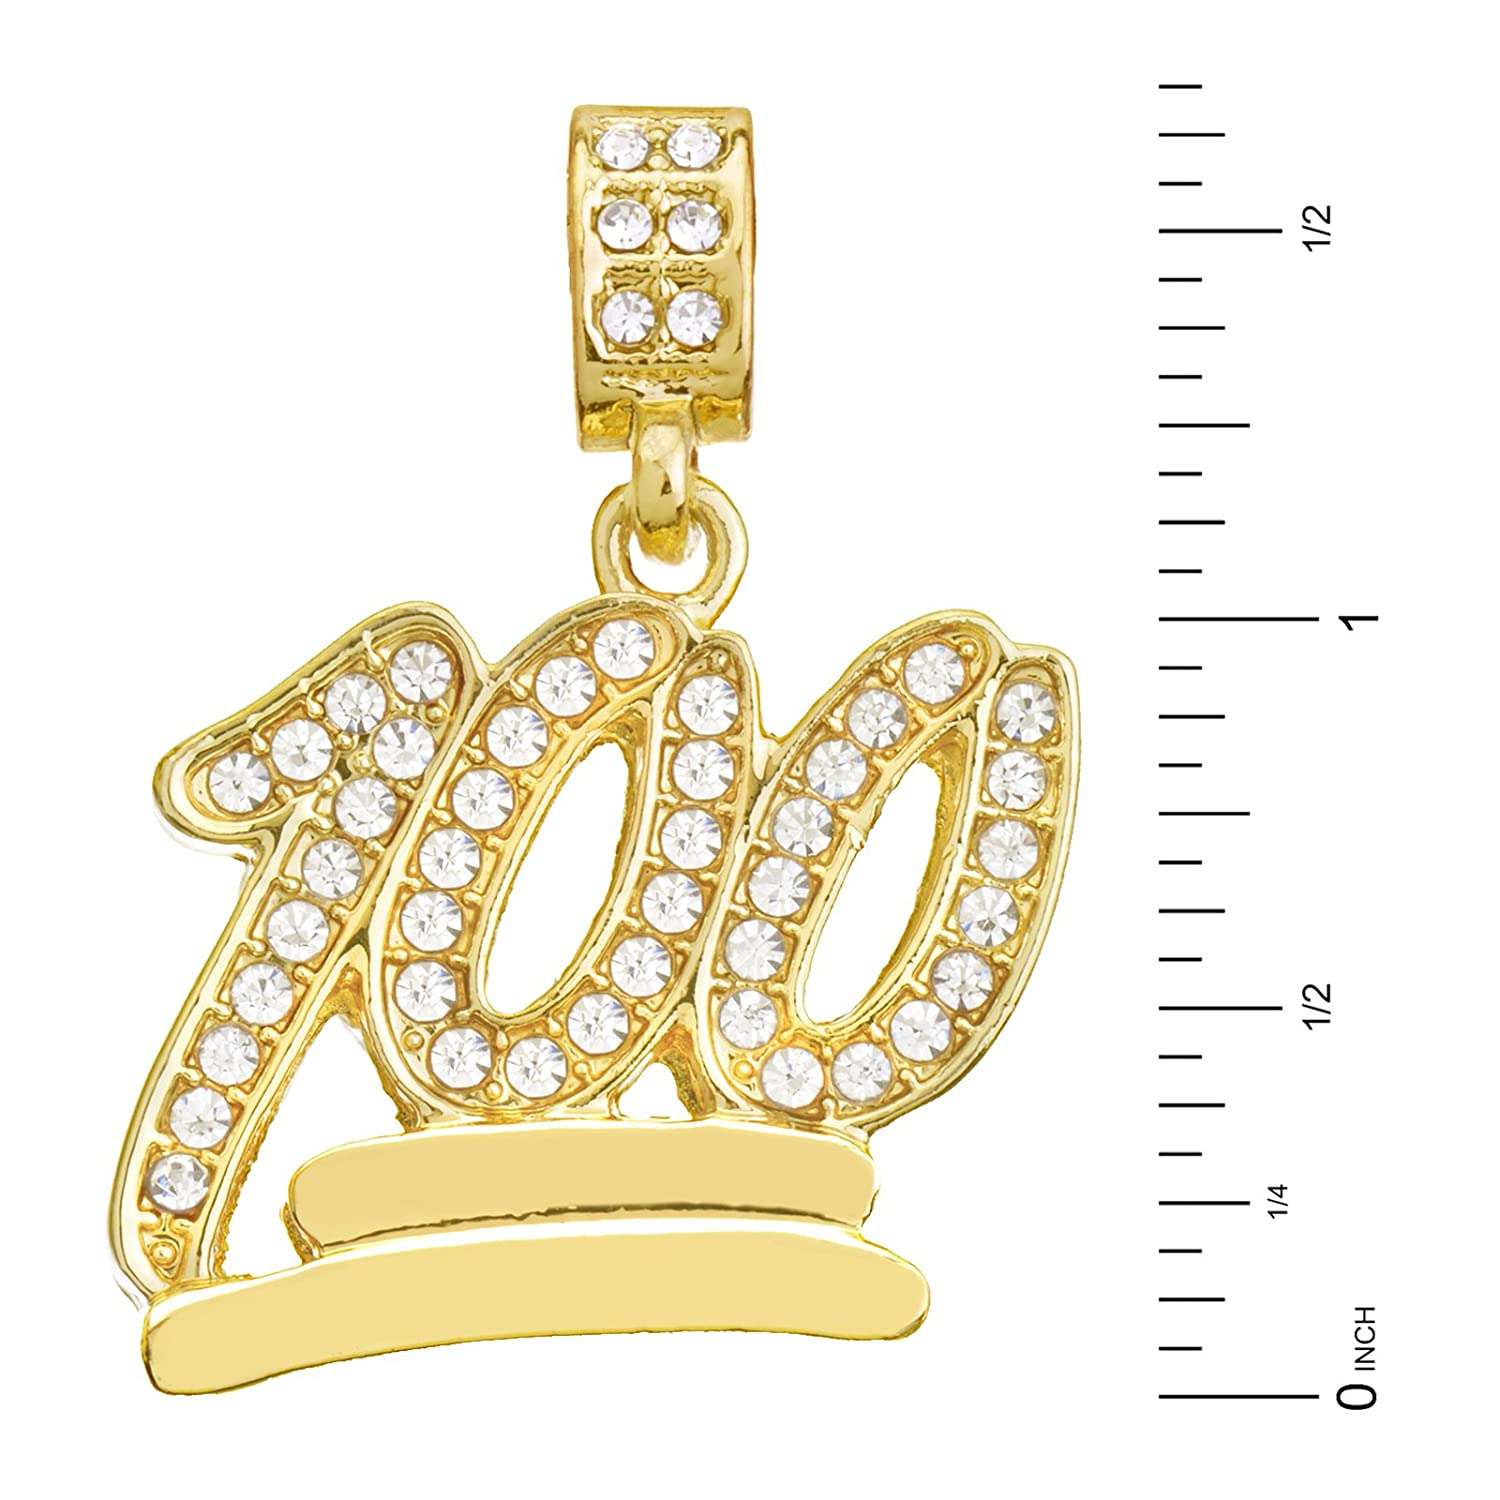 0aef8a372019f METALTREE98 Men's Gold Plated Iced Out 100 Emoji Pendant 20